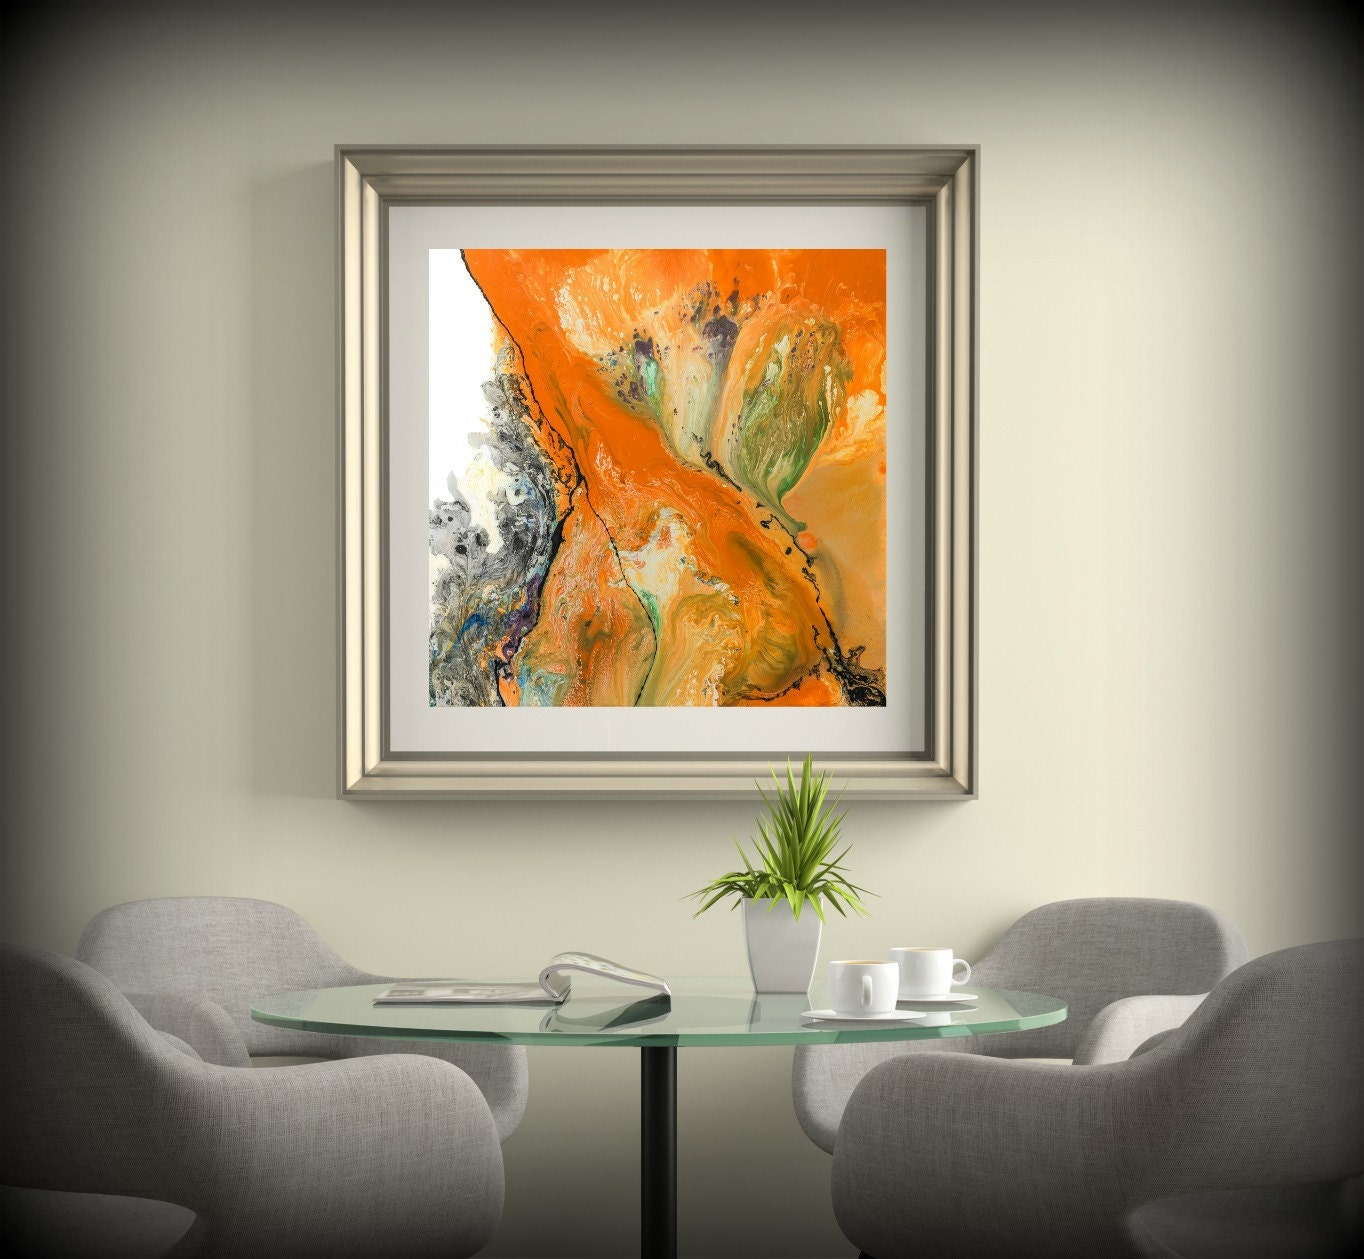 Living room decor square wall decor orange wall art dining for Room wall decor